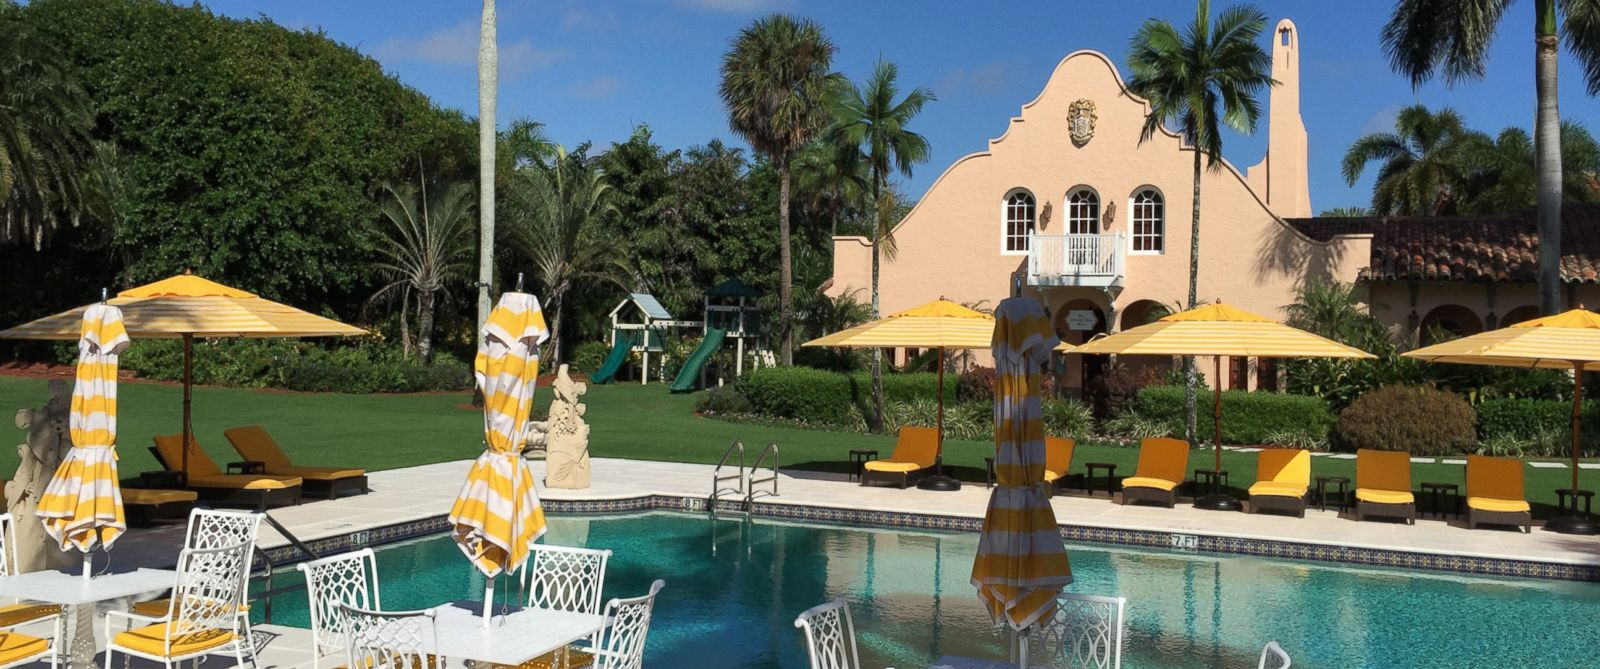 PHOTO: The swimming pool that Trump built at Mar-a-Lago is pictured here on Nov. 1, 2015 in Palm Beach, Fla.